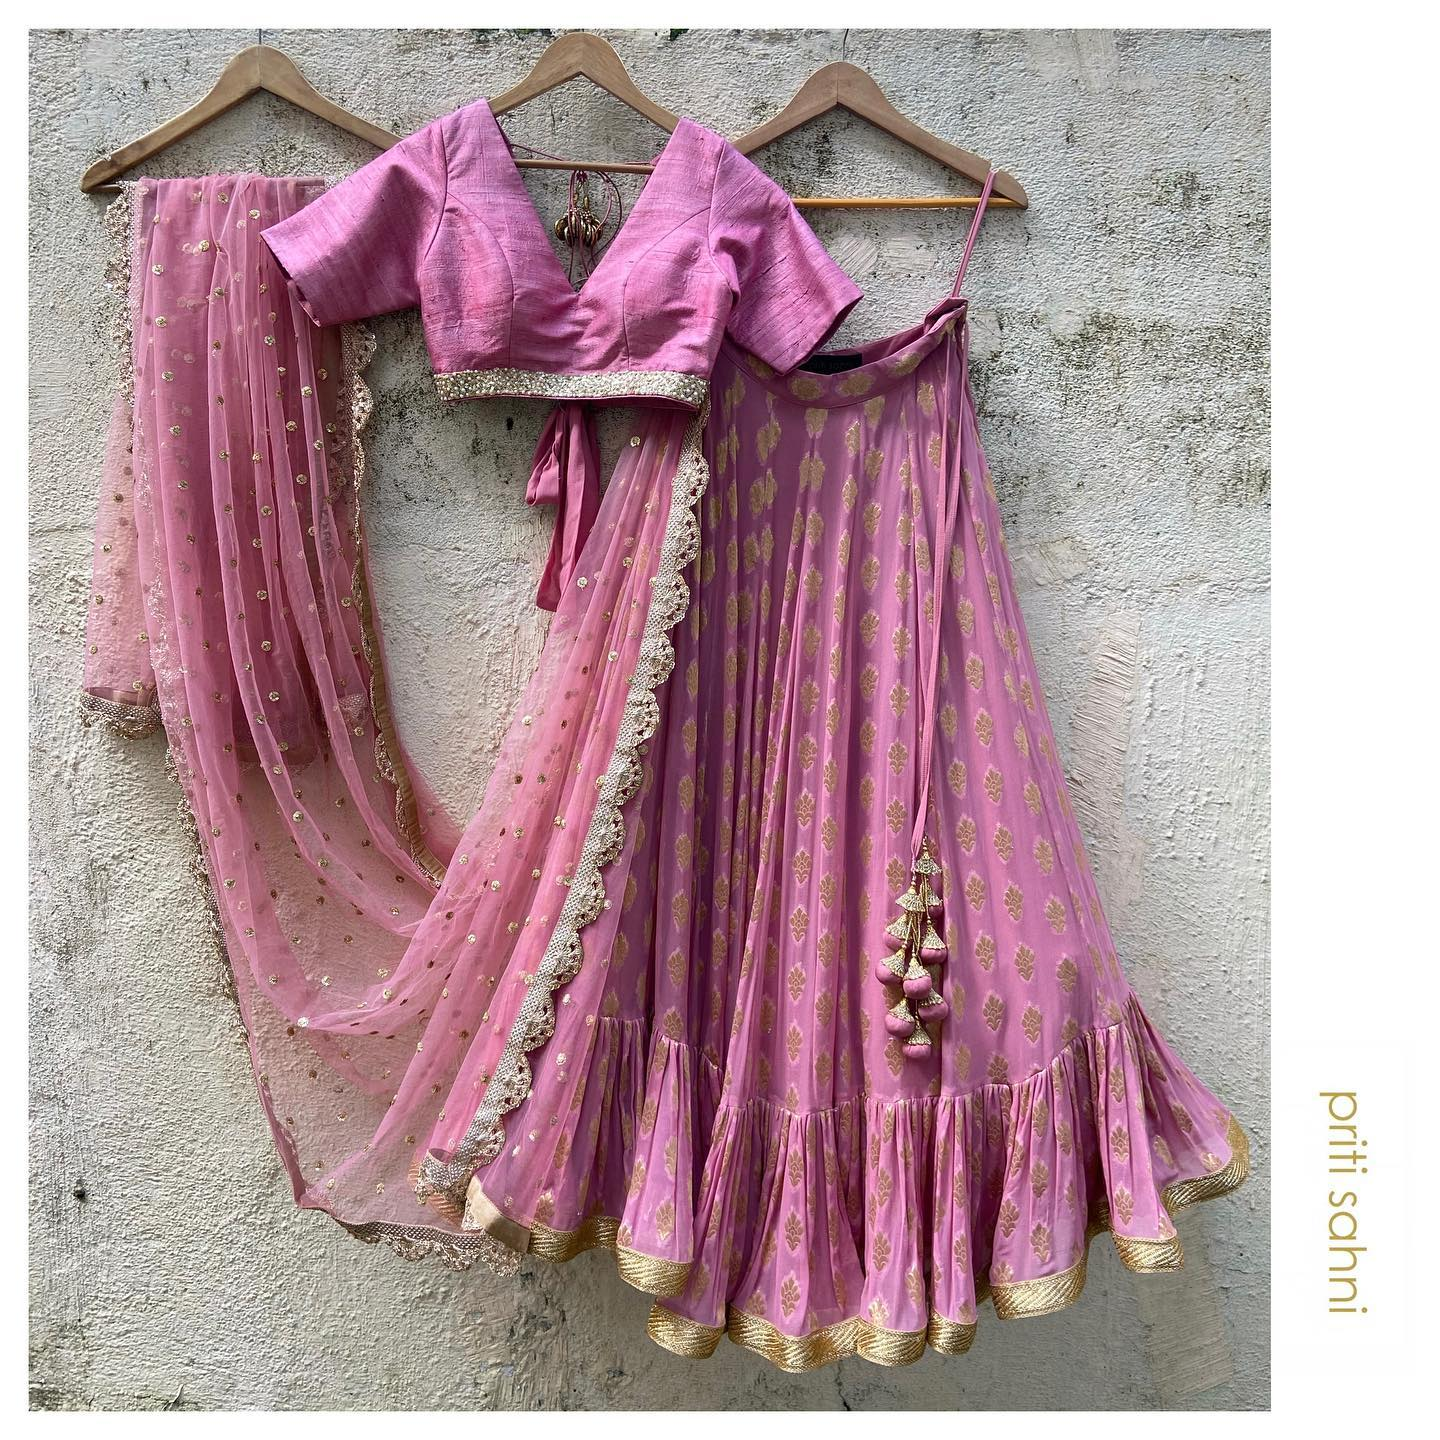 Rose Pink Love.  Rose pink lehenga with ruffle styling paired with rose pink raw silk blouse in sequin Pearl border and tie up detailing. The dupatta is in rose pink tulle with sequin work highlight all over  For more details DM or Whatsapp on +91-9022617481 2021-09-22